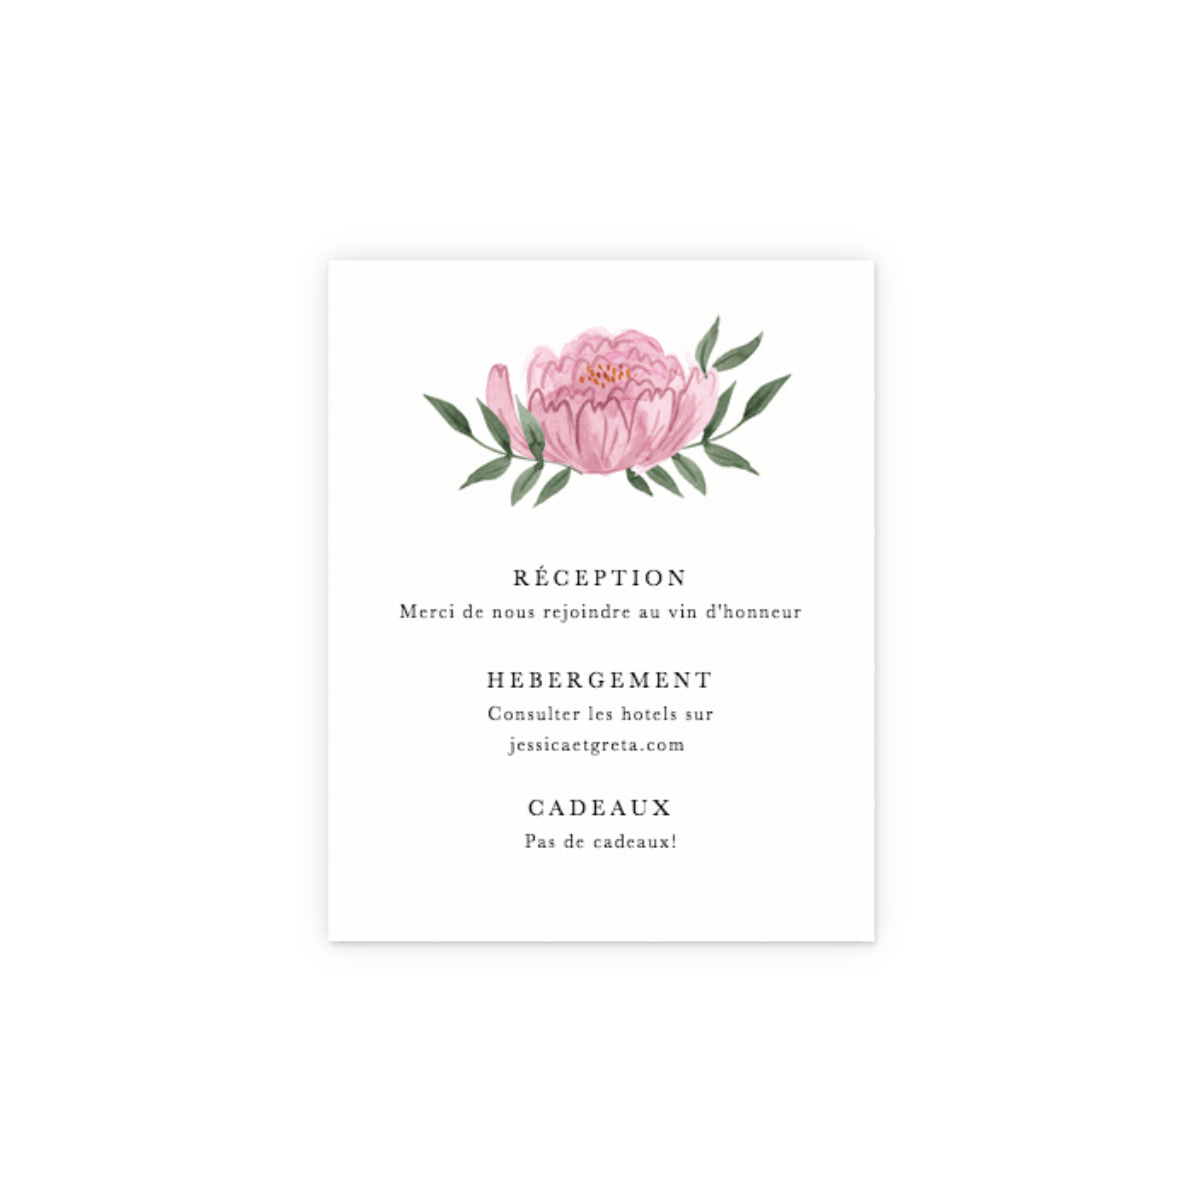 Https%3a%2f%2fwww.papier.com%2fproduct image%2f65538%2f9%2fdusky peonies 14861 carte d informations 1549640152.png?ixlib=rb 1.1